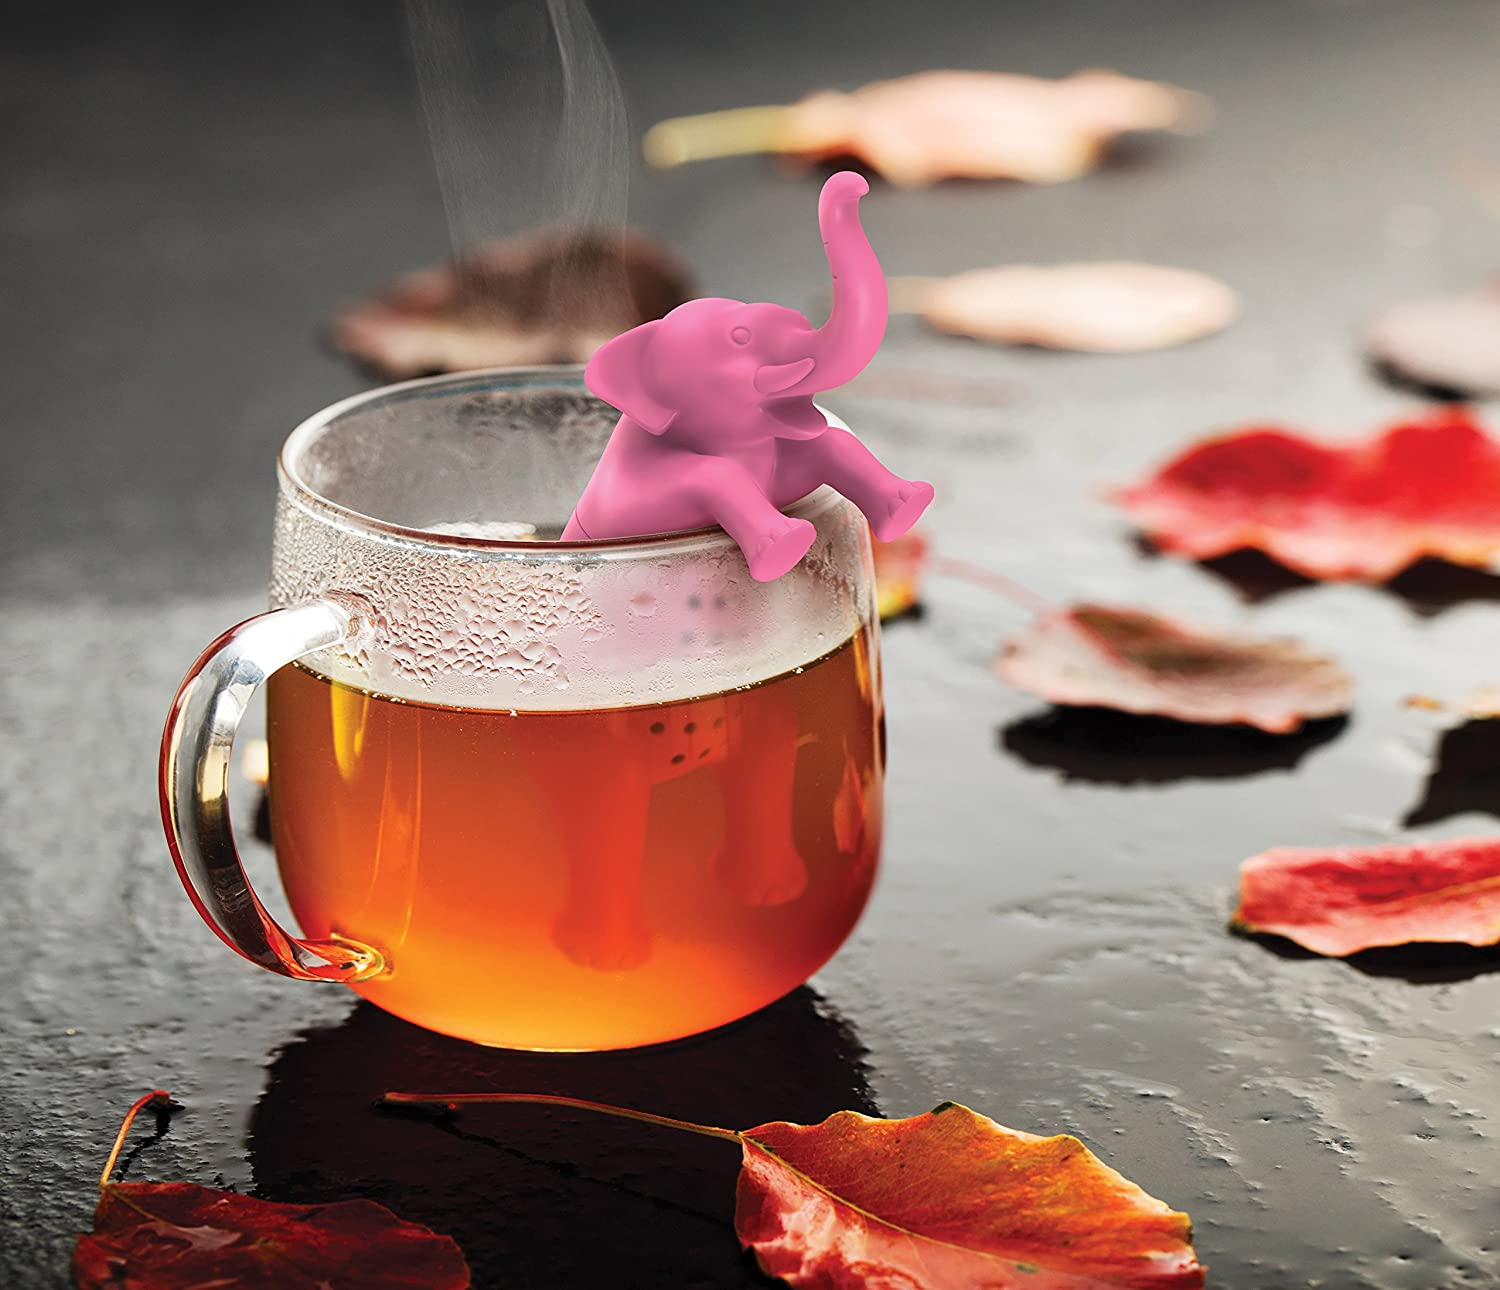 pink elephant silicone tea infuser in a cup of tea